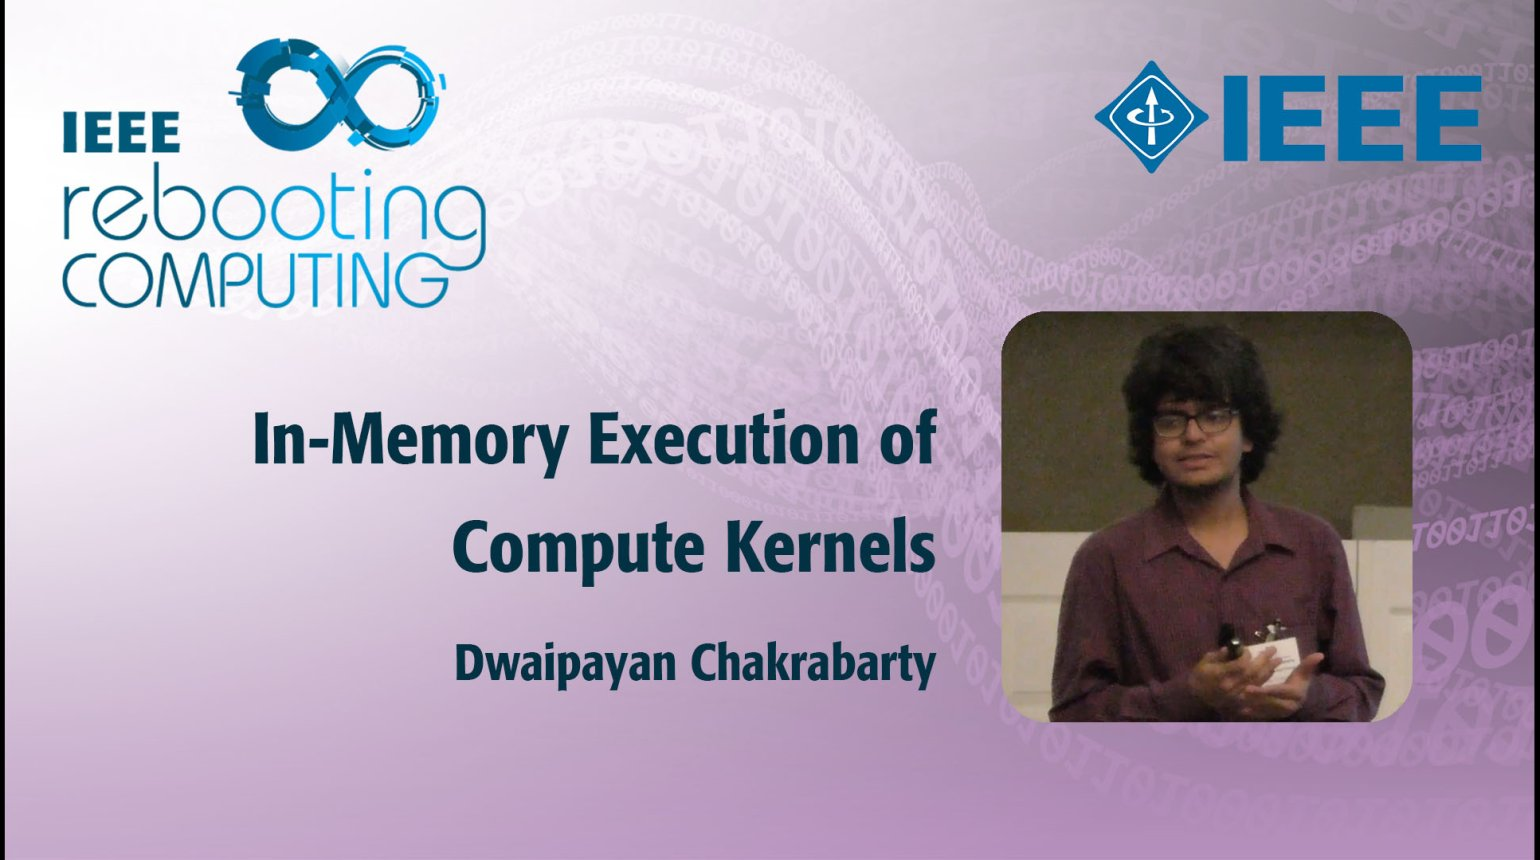 In-Memory Execution of Compute Kernels: IEEE Rebooting Computing 2017